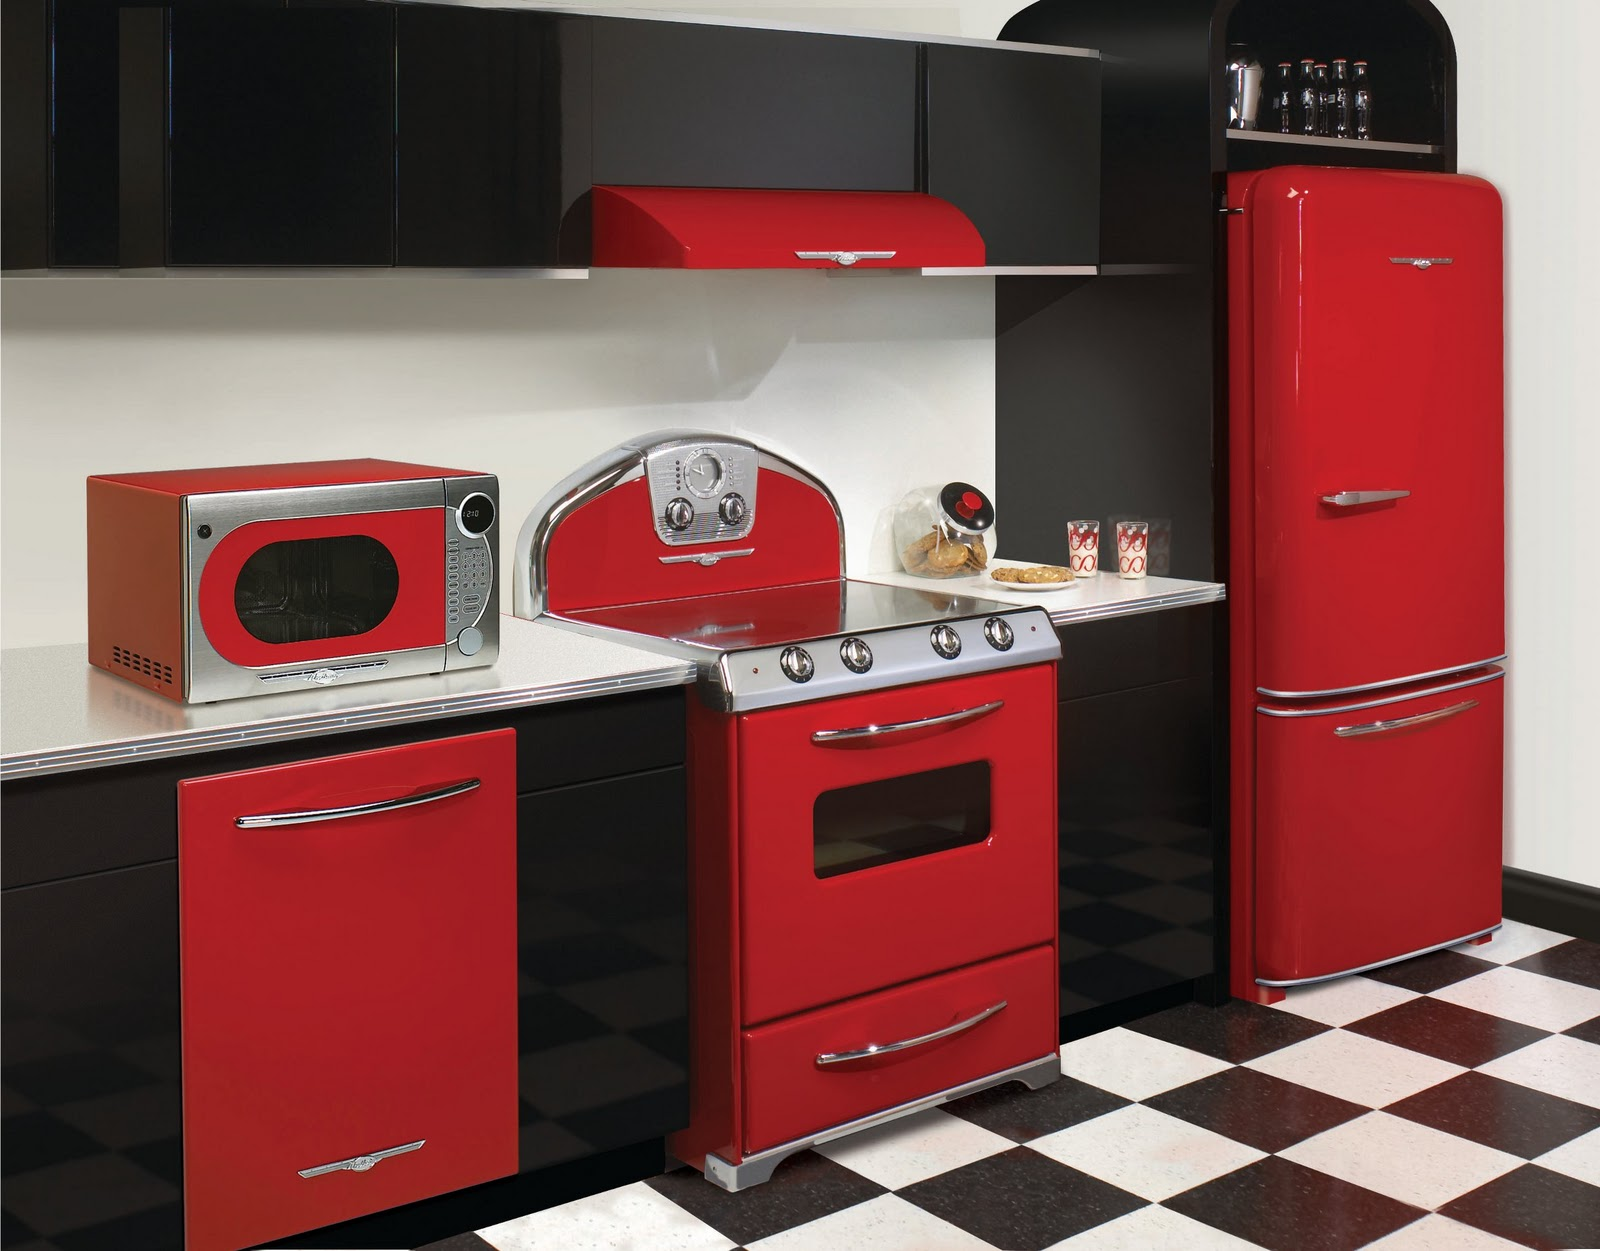 Full Red NS Kitchen 2010 12